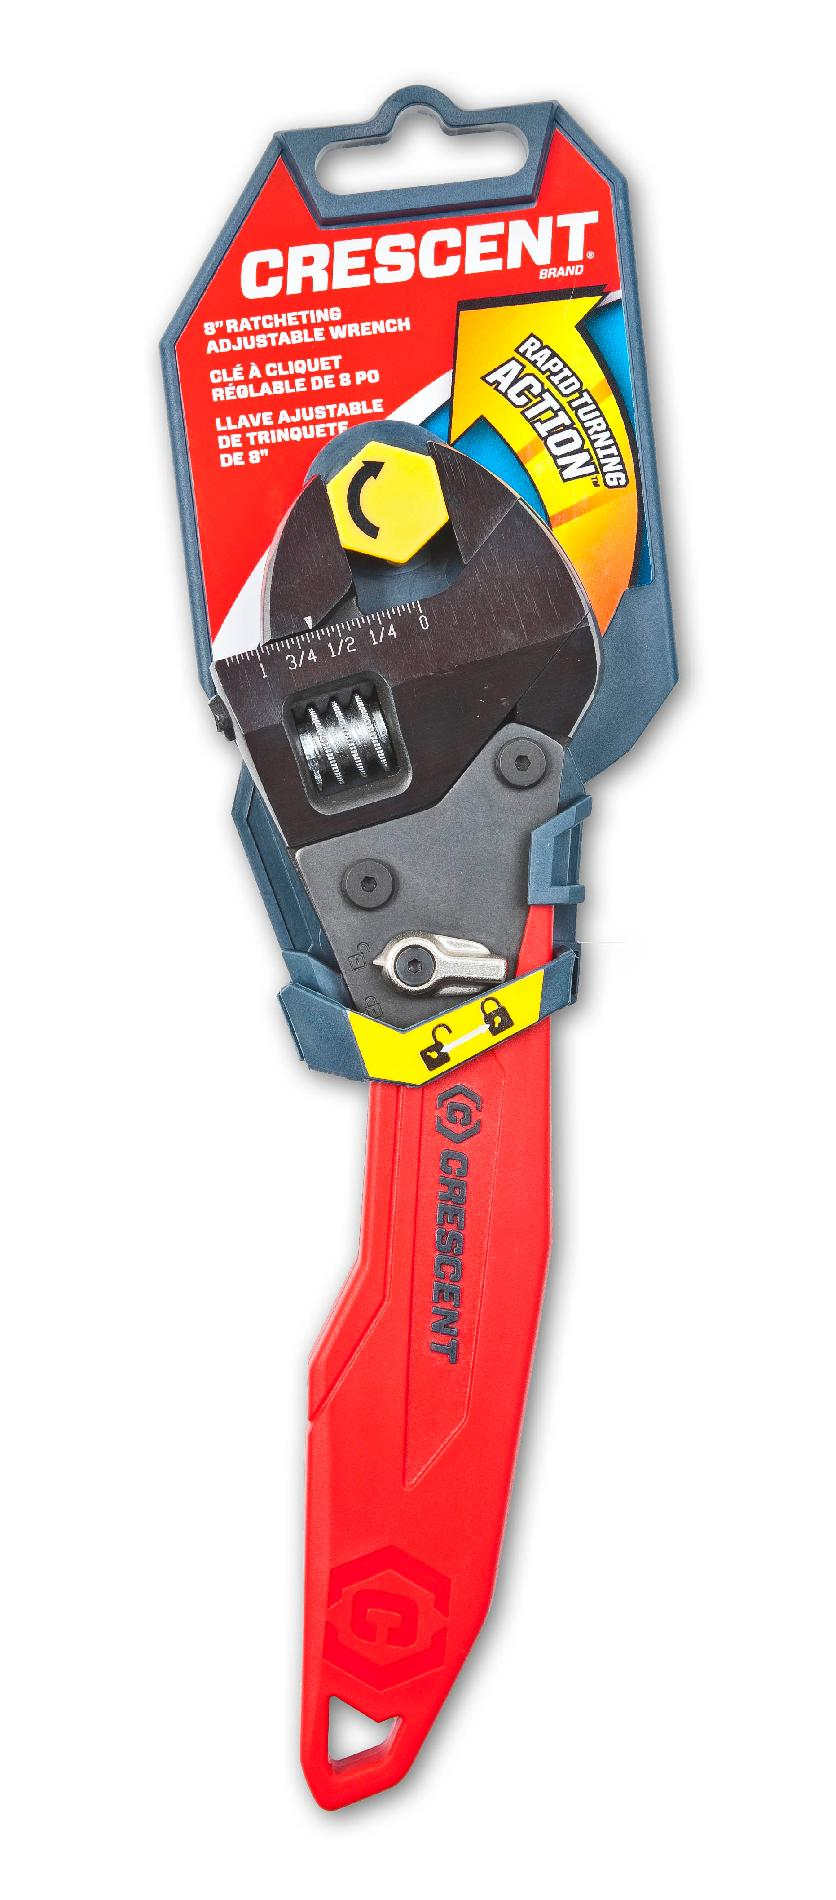 "Crescent 8"" Ratcheting Adjustable Wrench"